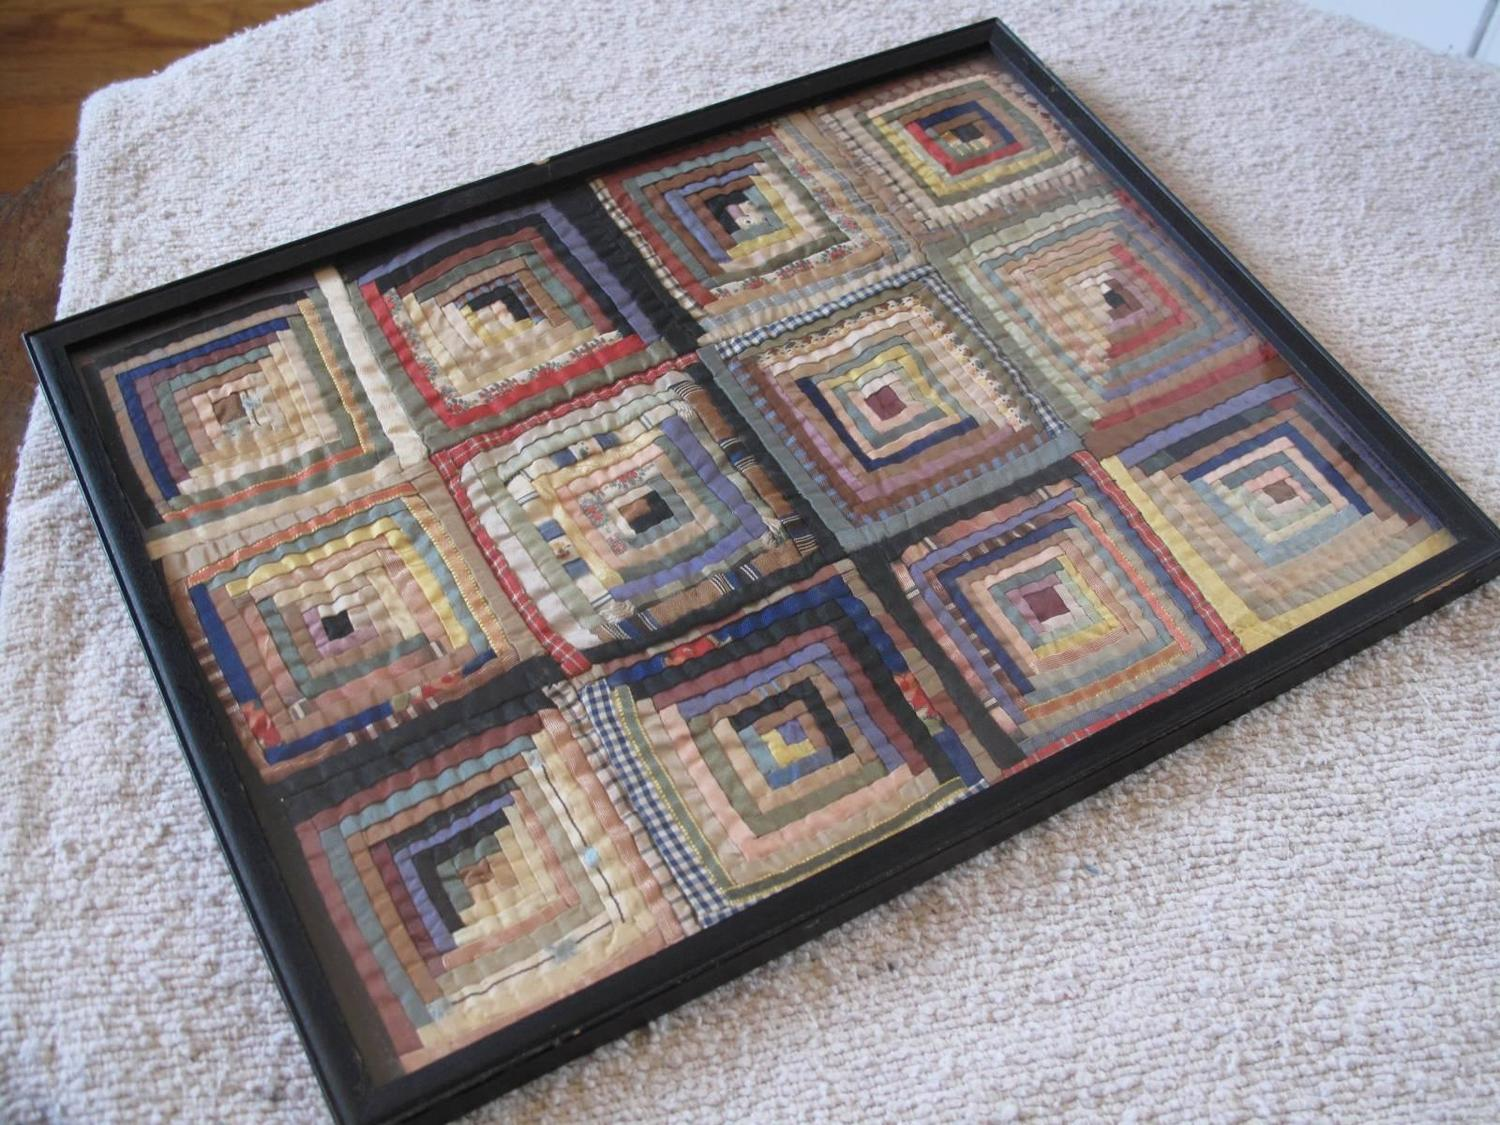 Miniature Framed Courthouse Steps Quilt Fragment For Sale At 1stdibs. Full resolution‎  file, nominally Width 1500 Height 1125 pixels, file with #6B483D.